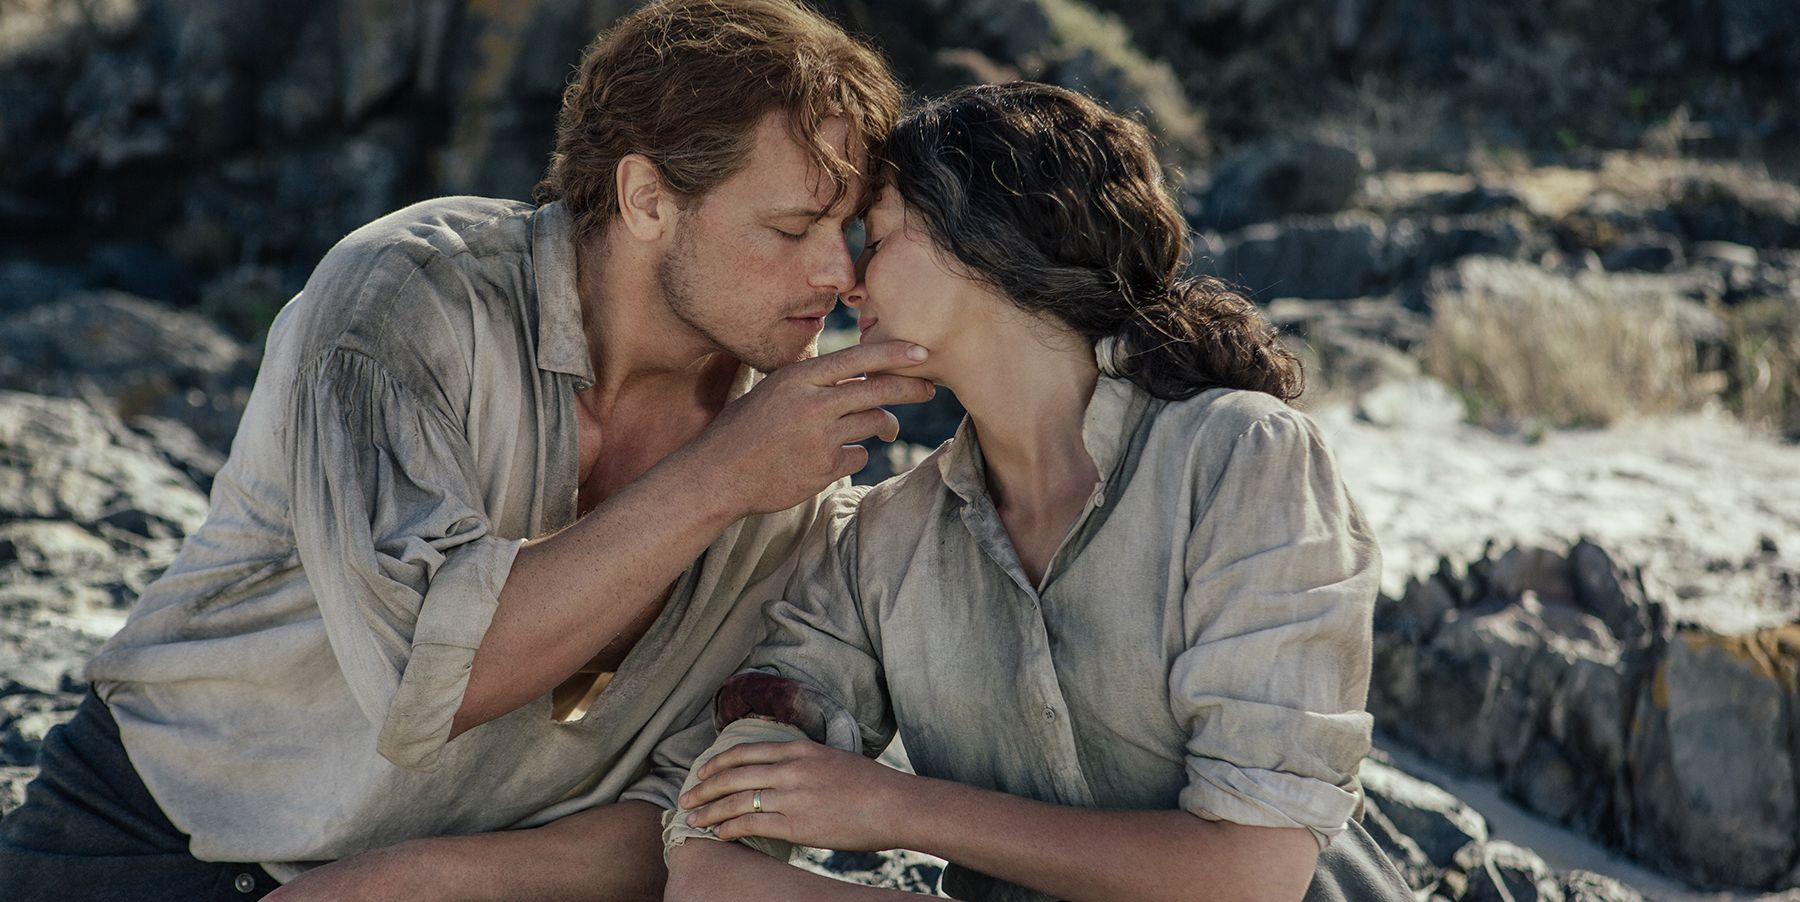 Sam Heughan and Caitriona Balfe as Jamie and Claire in Outlander